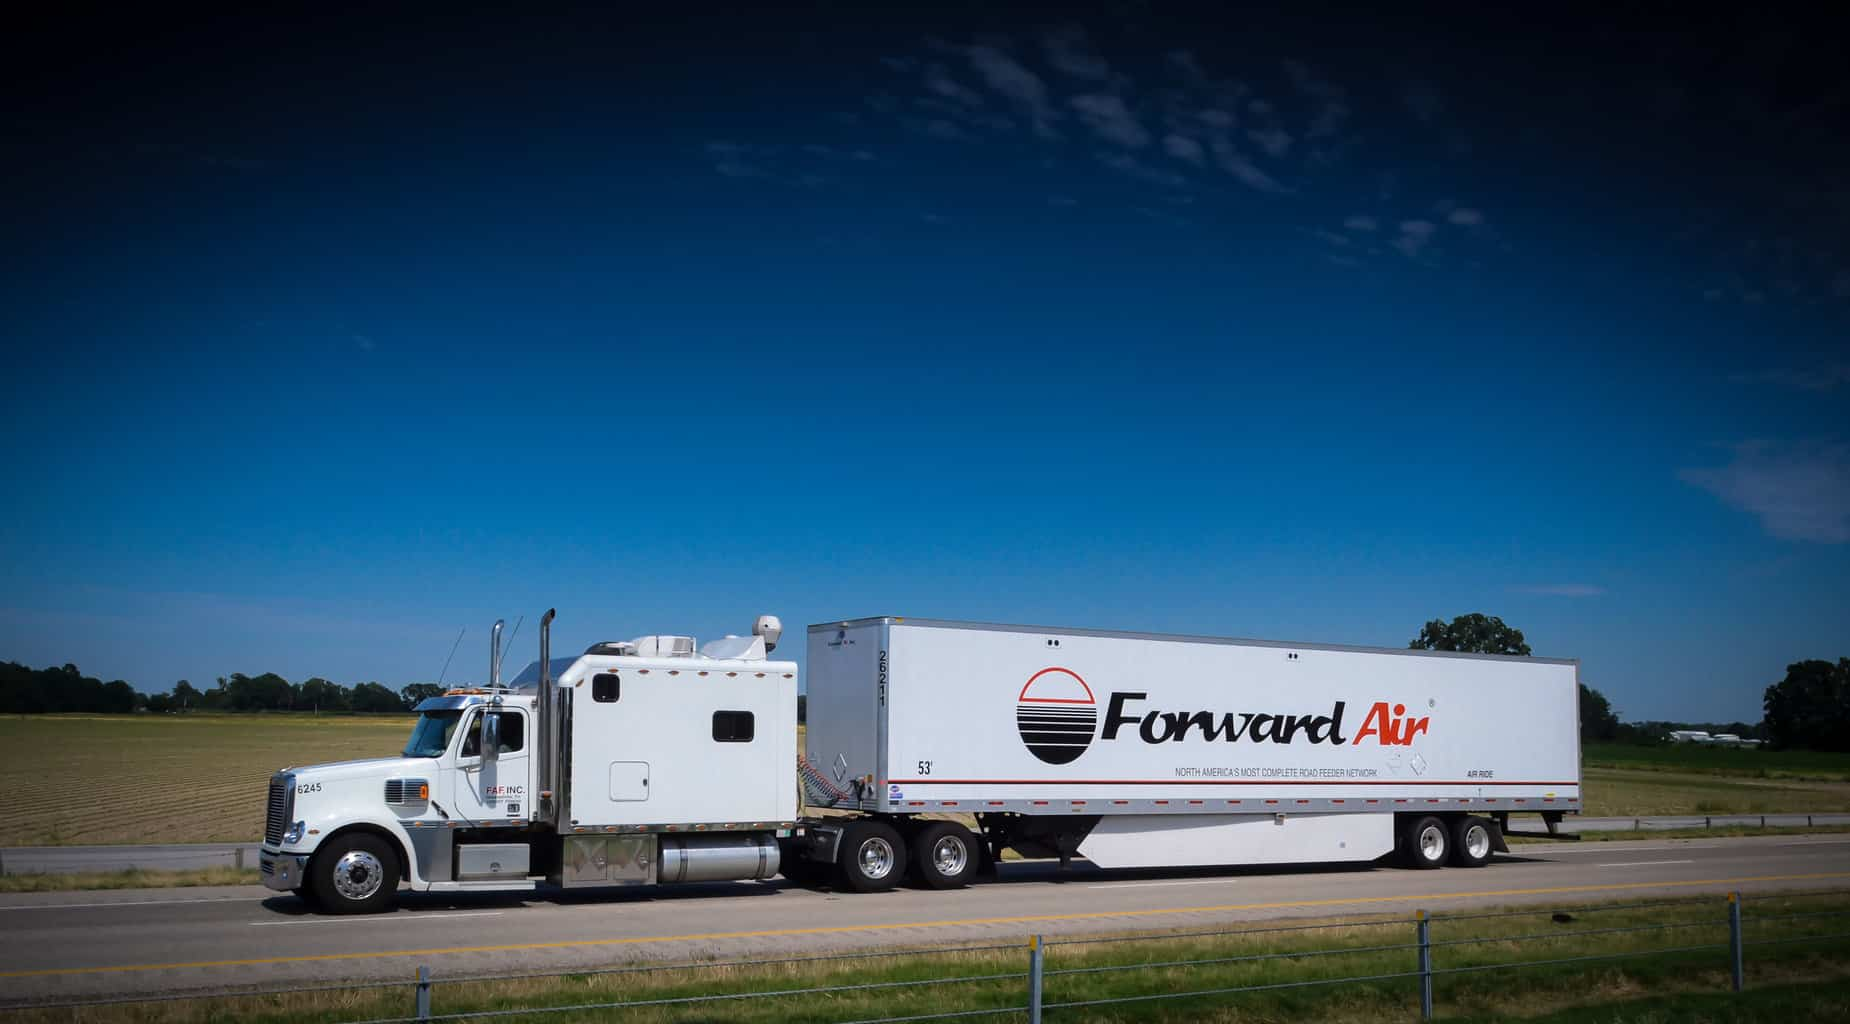 Photo of Results from the 3PLs: strong quarter at Echo, Forward Air makes an acquisition, a detailed market overview from Landstar